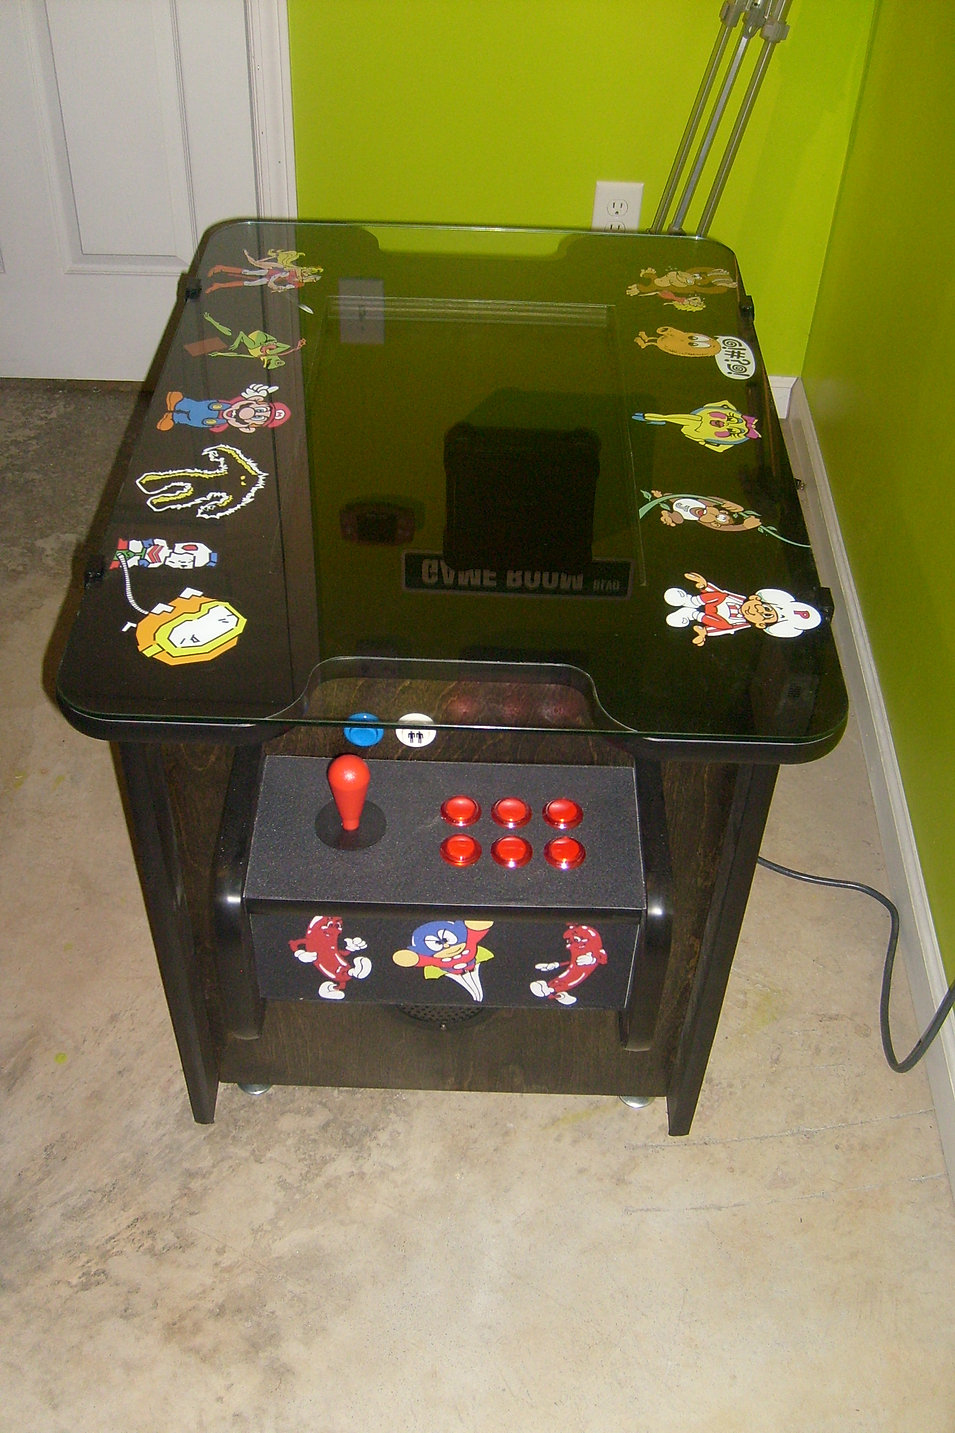 Cocktail Arcade Cabinet Kit Mame Cocktail Arcade